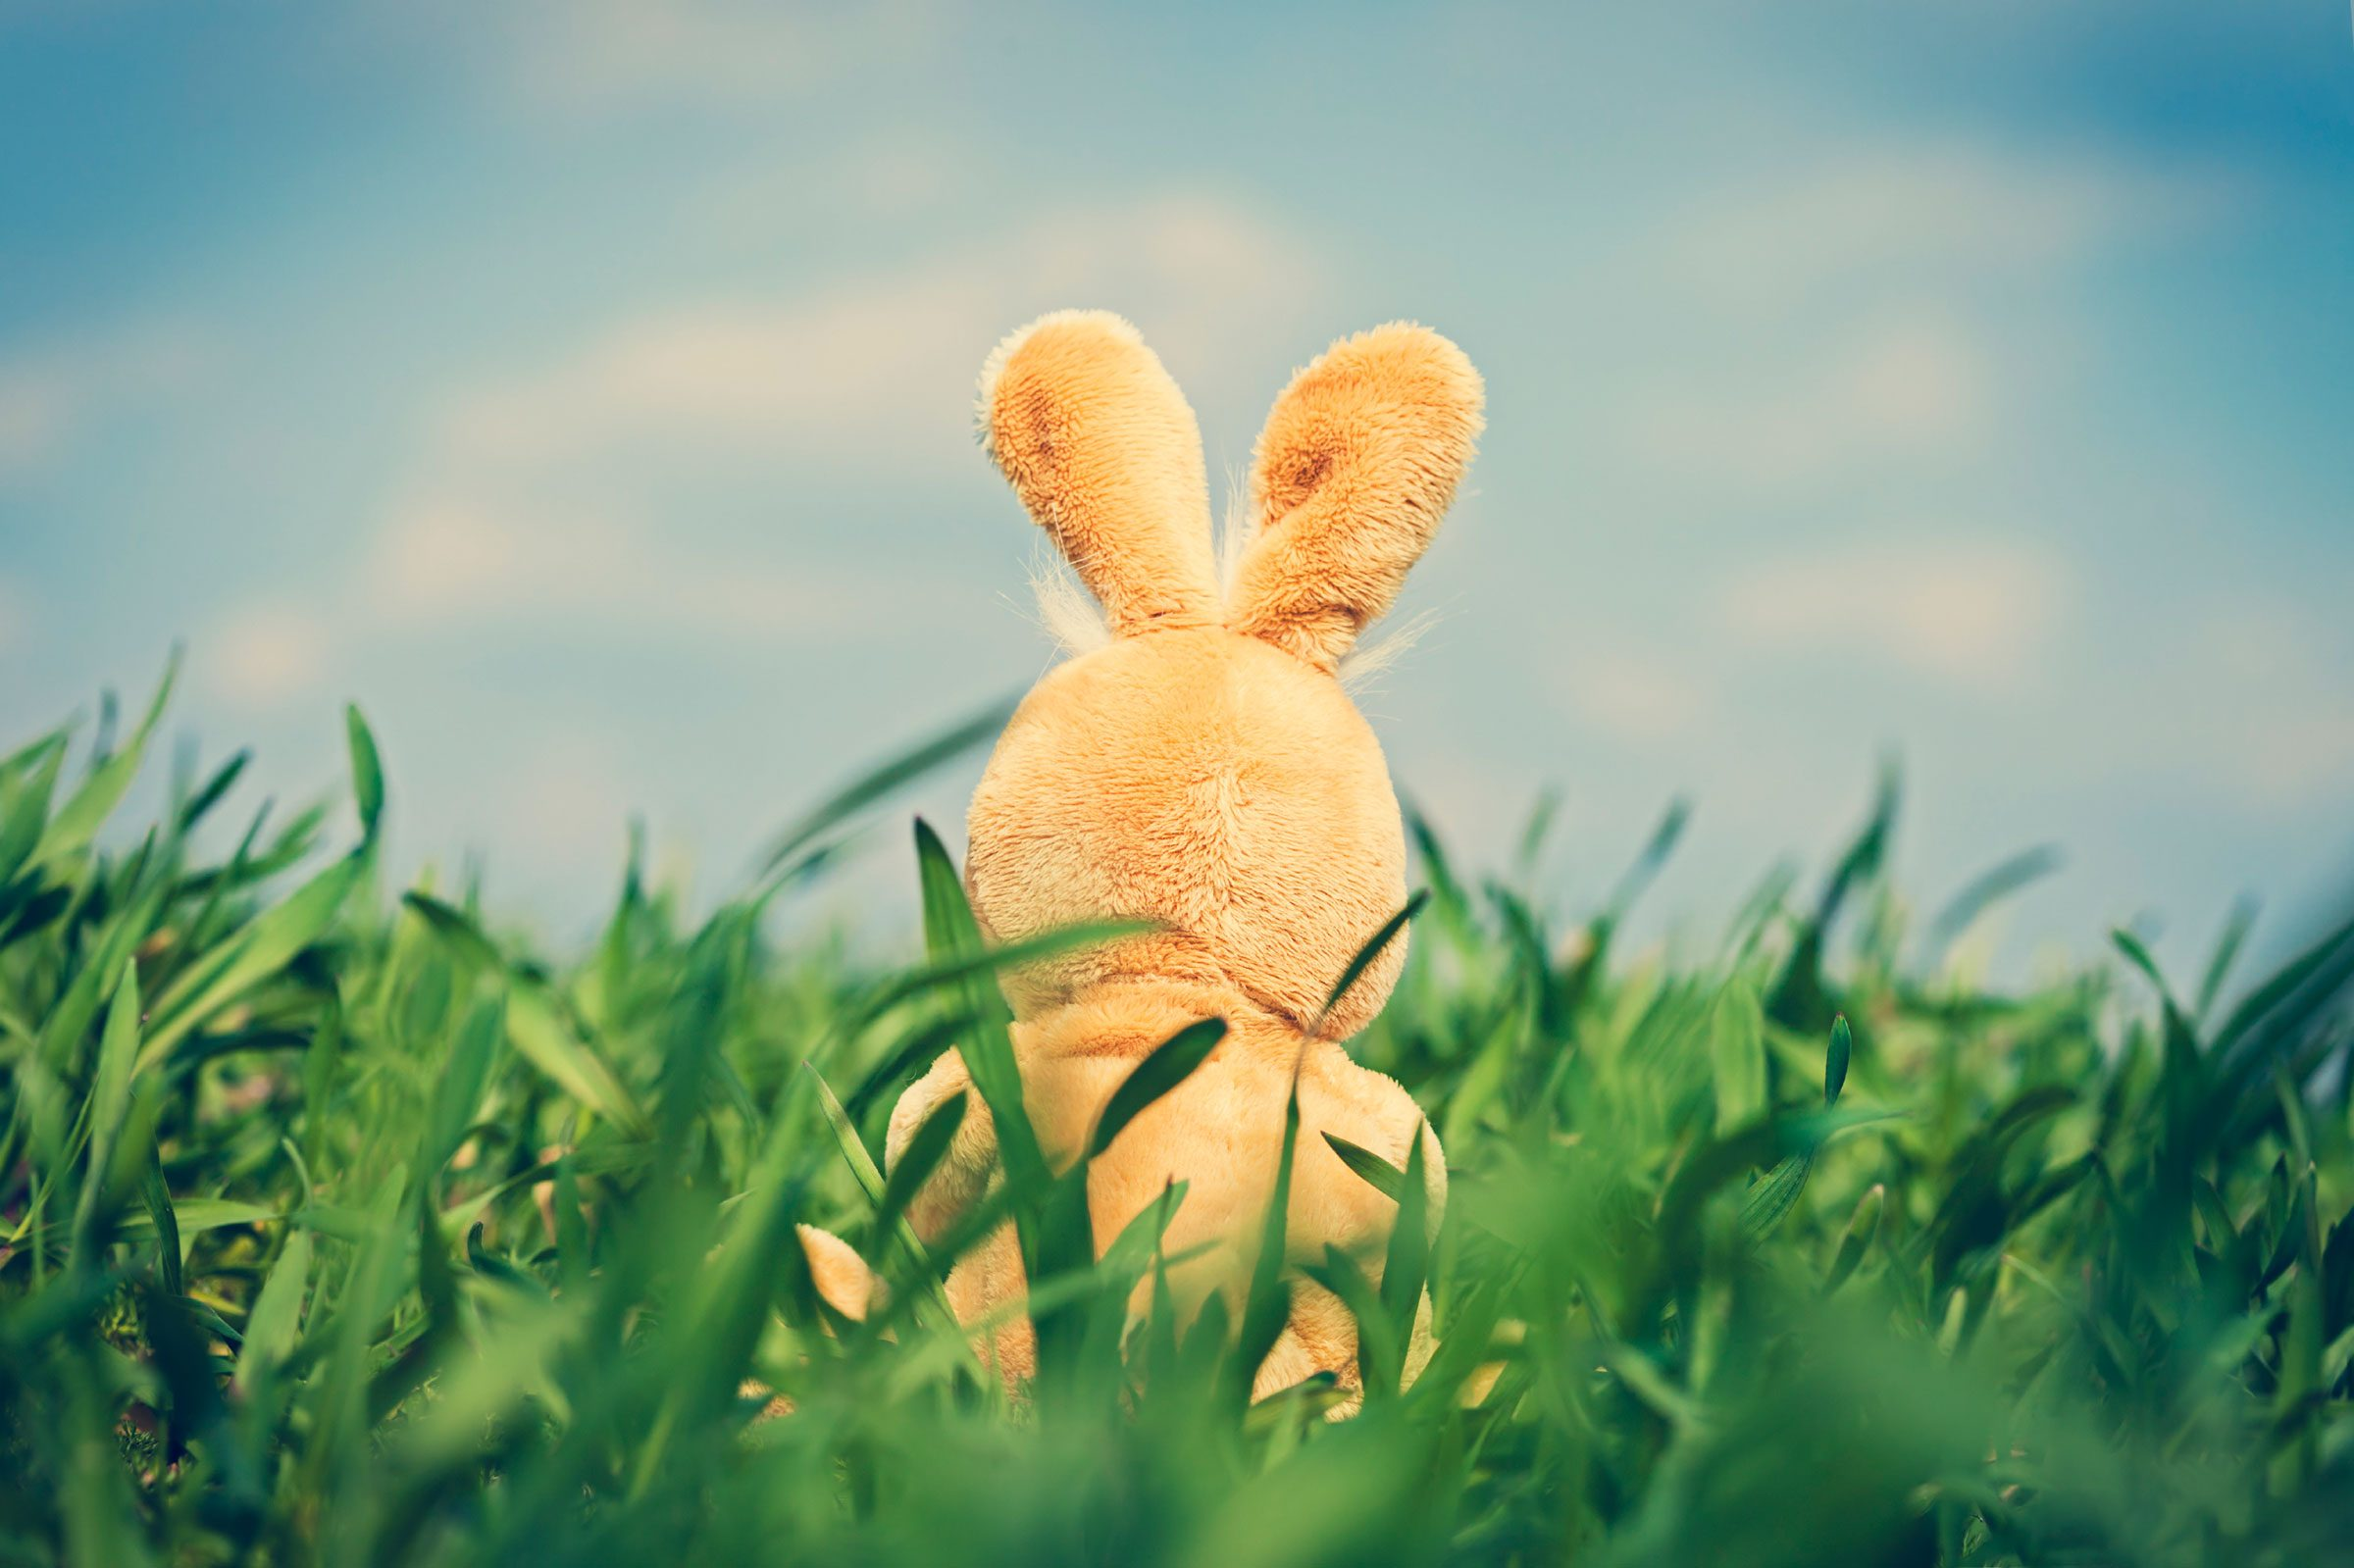 Easter Myth: The Easter Bunny